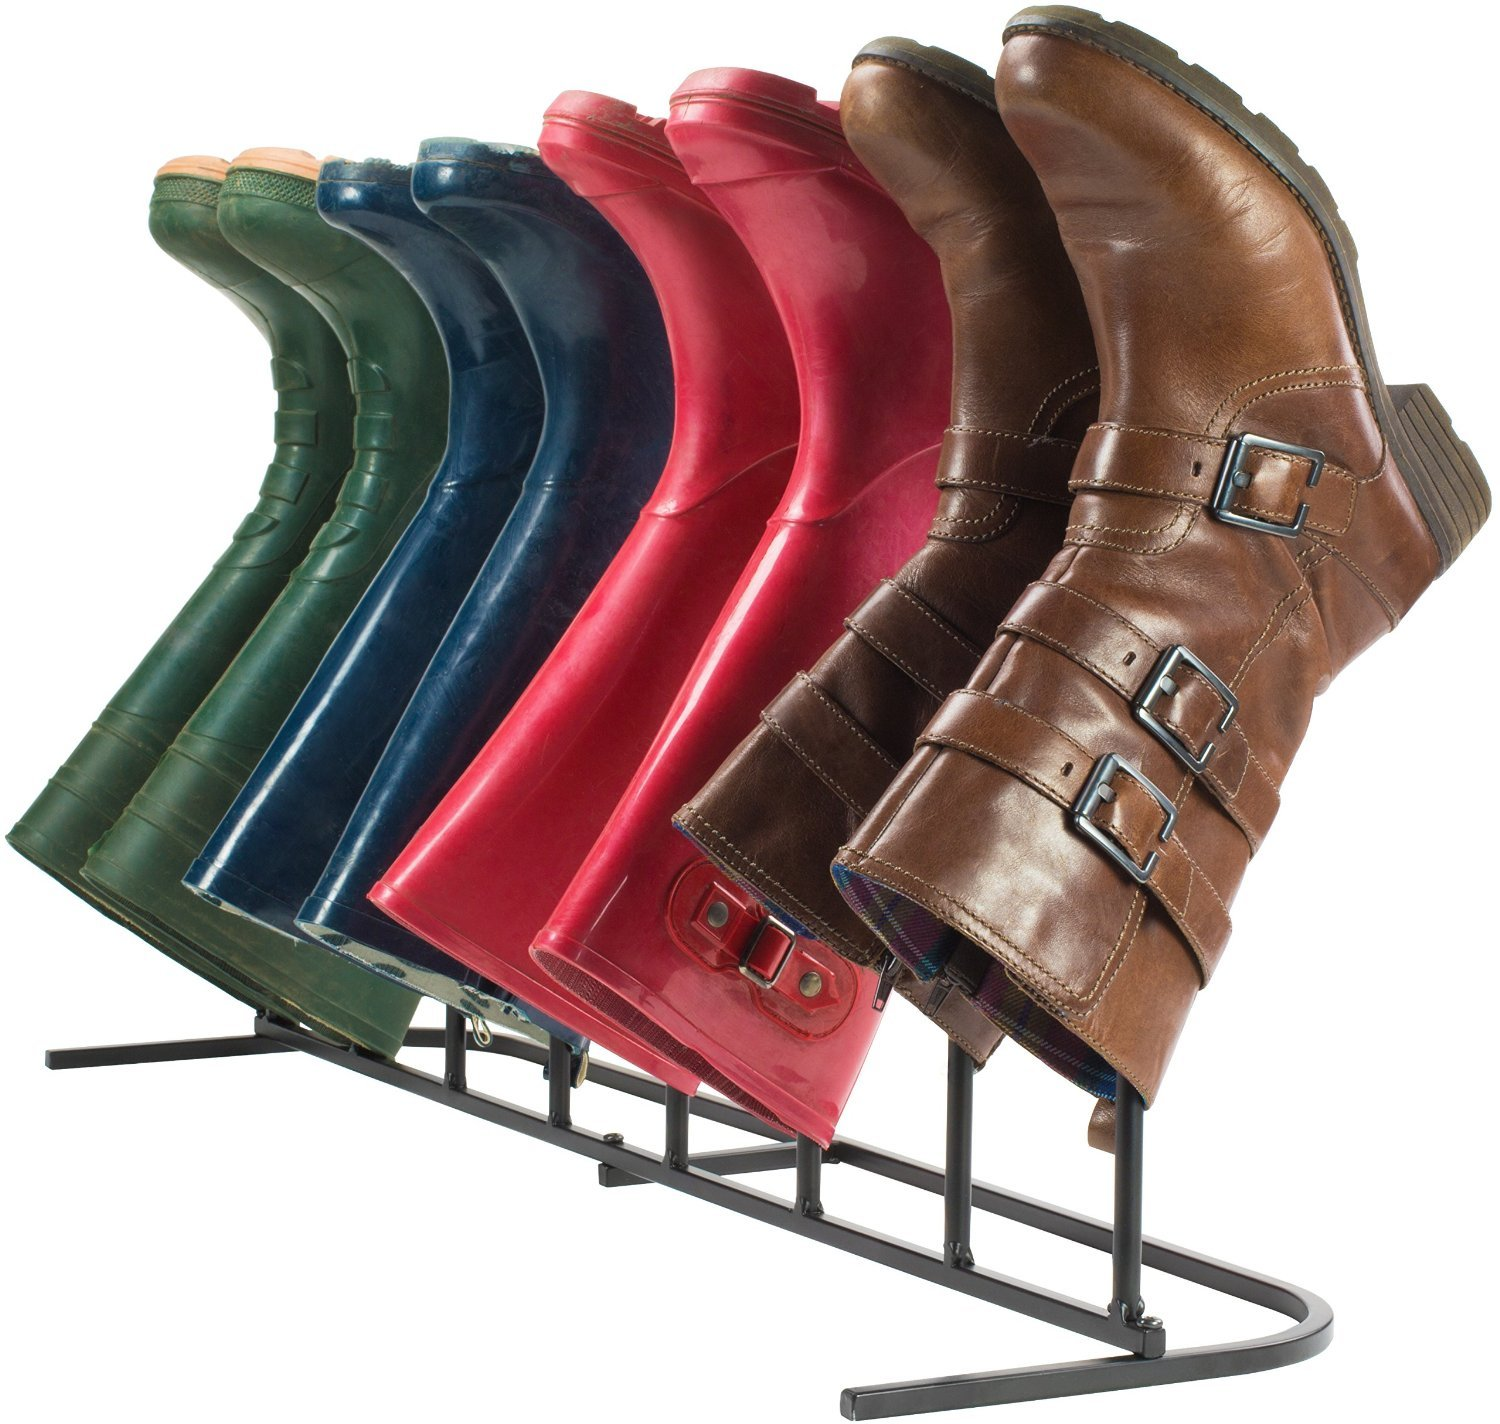 """Boot Rack ,Boot Organizer:""""Eagle iRoot"""" Creative Indoor/Outdoor Wrought Iron Boot Rack Stand , Elegant & Steady Boot Organizer - Perfect for Storing & Drying .Compact Size Allows for Unobtrusive and Portable Storage of Your Boots. No More Tripping Ove by Eastern Cloud (Image #7)"""